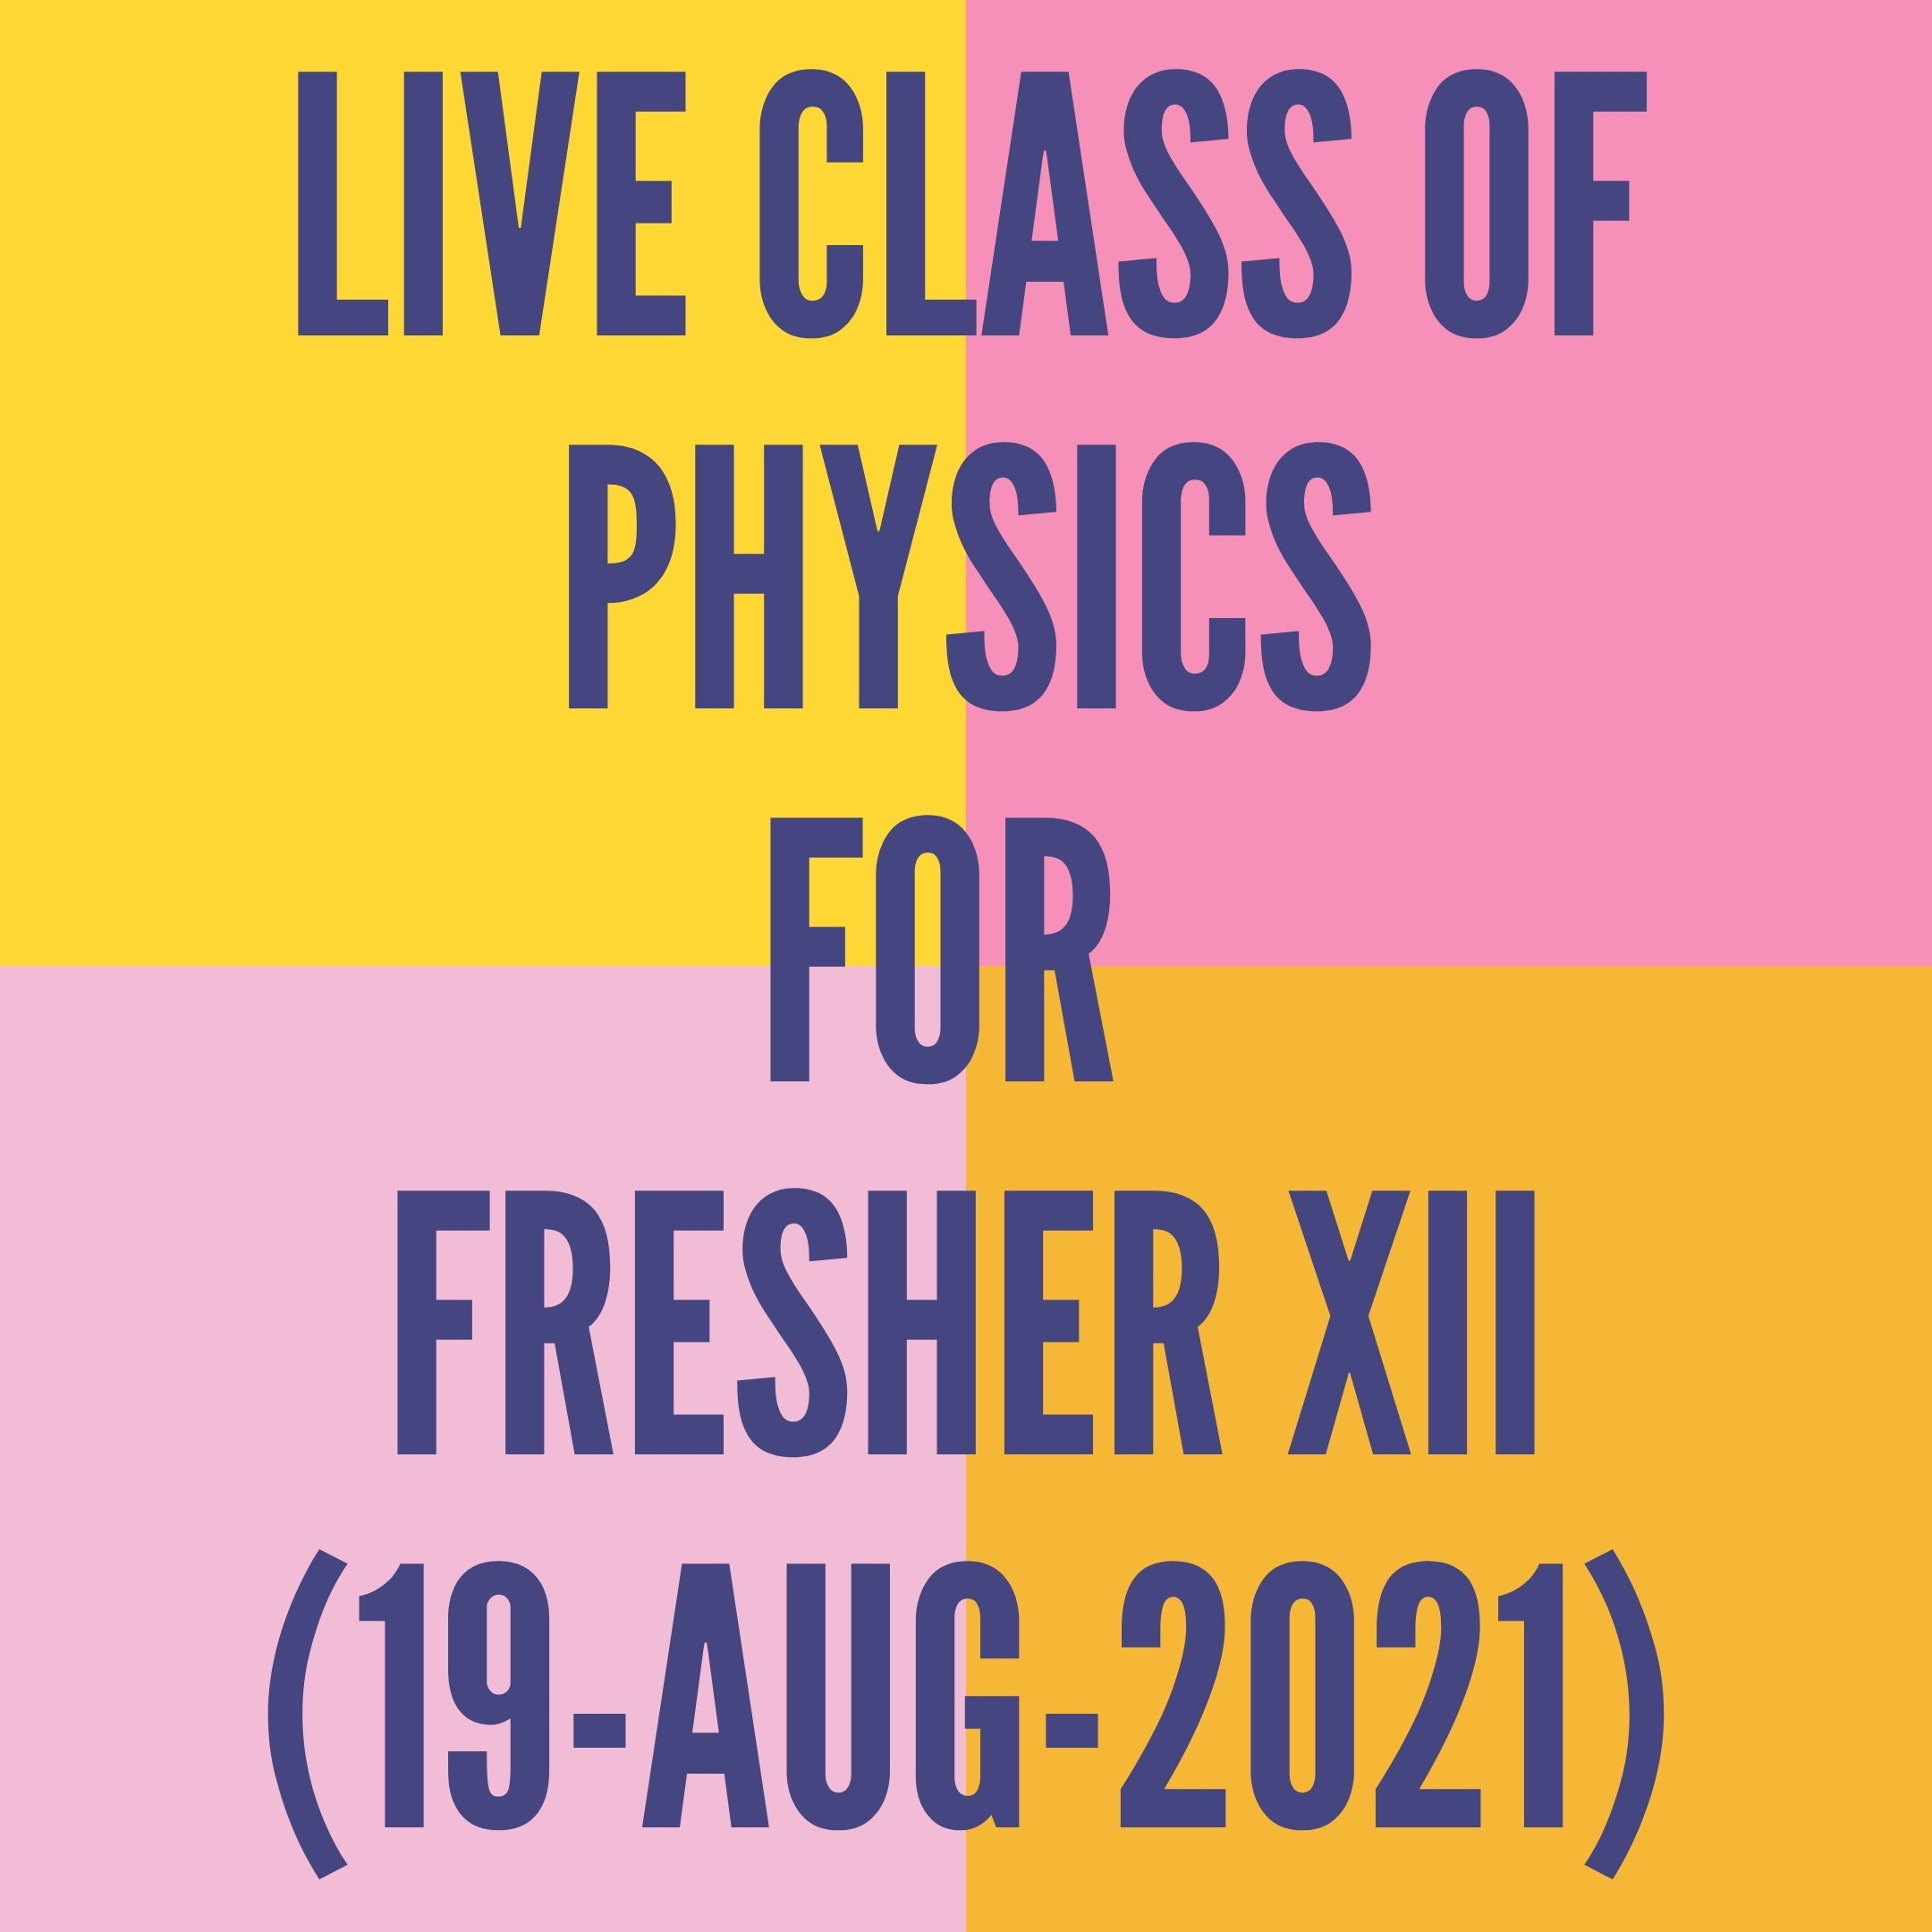 LIVE CLASS OF PHYSICS FOR FRESHER XII (19-AUG-2021) CURRENT ELECTRICITY